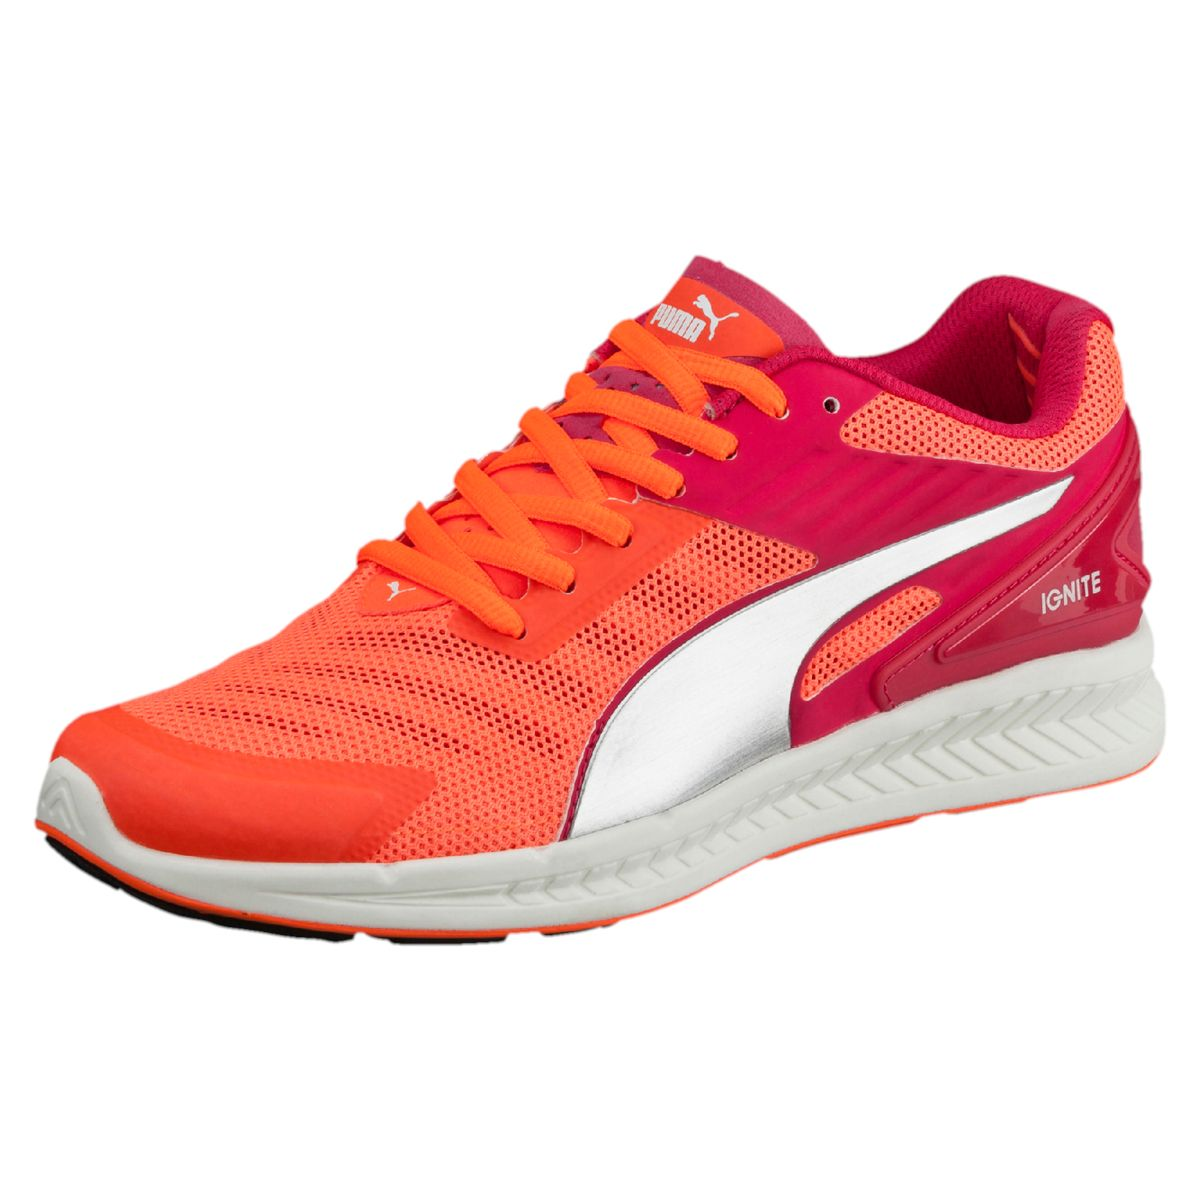 Ladies Puma Ignite Shoes